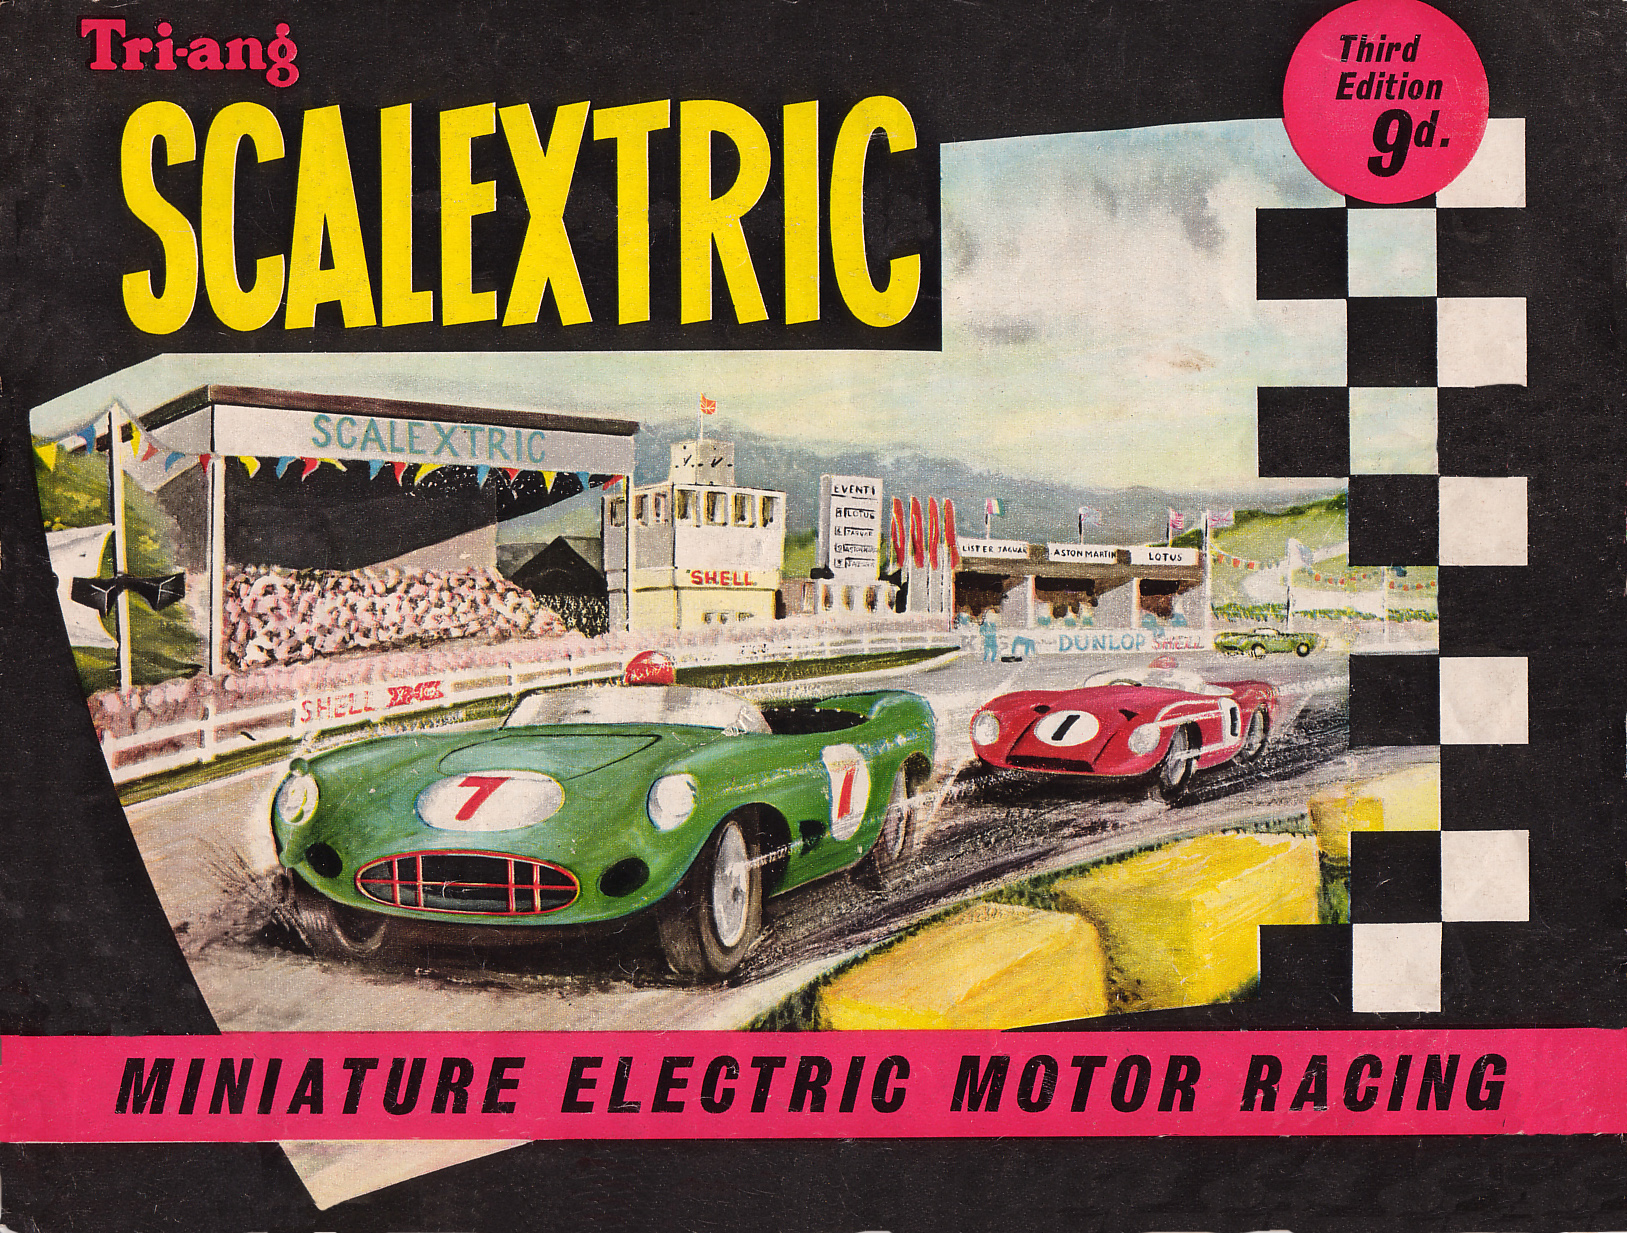 tri-ang_scalextric_miniture_electric_motor_racing_catalog_brochures_and_catalogs_b49ff927-871a-4f7e-a66a-7aaa021fdf0b1962.jpg